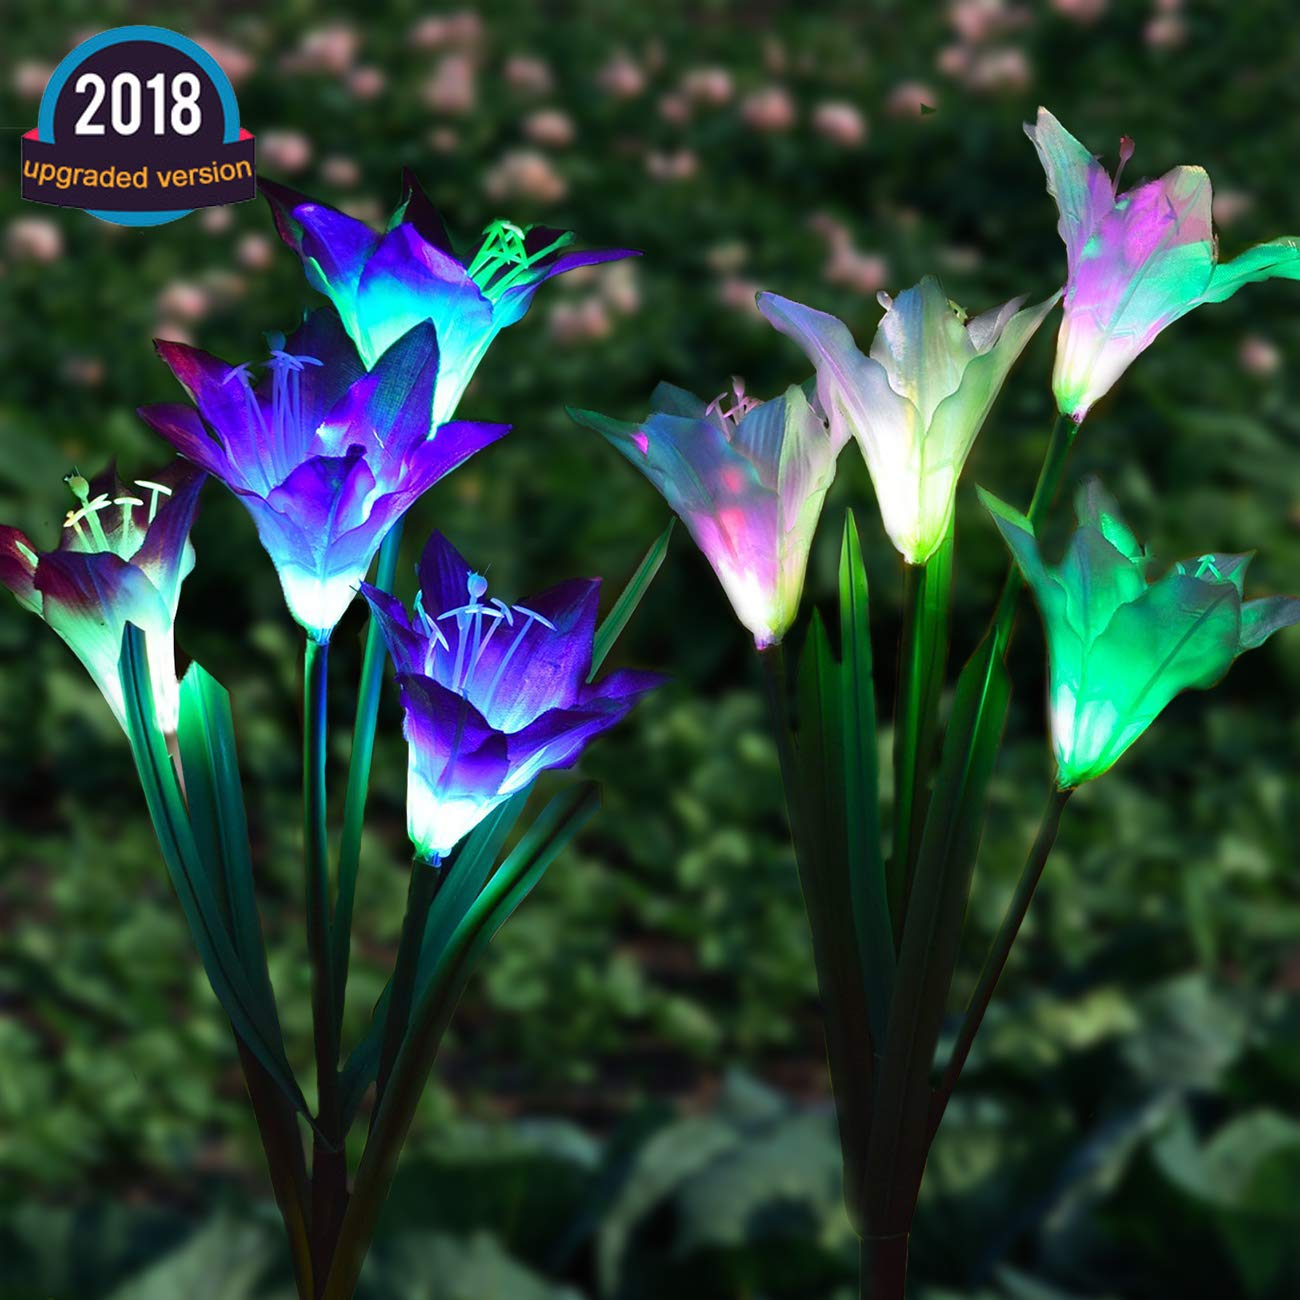 Semaco Solar Lights Outdoor New Upgraded Solar Garden Lights, Multi-Color Changing Lily Solar Flower Lights for Patio,Yard Decoration, Bigger Flower and Wider Solar Panel(Purple and White)